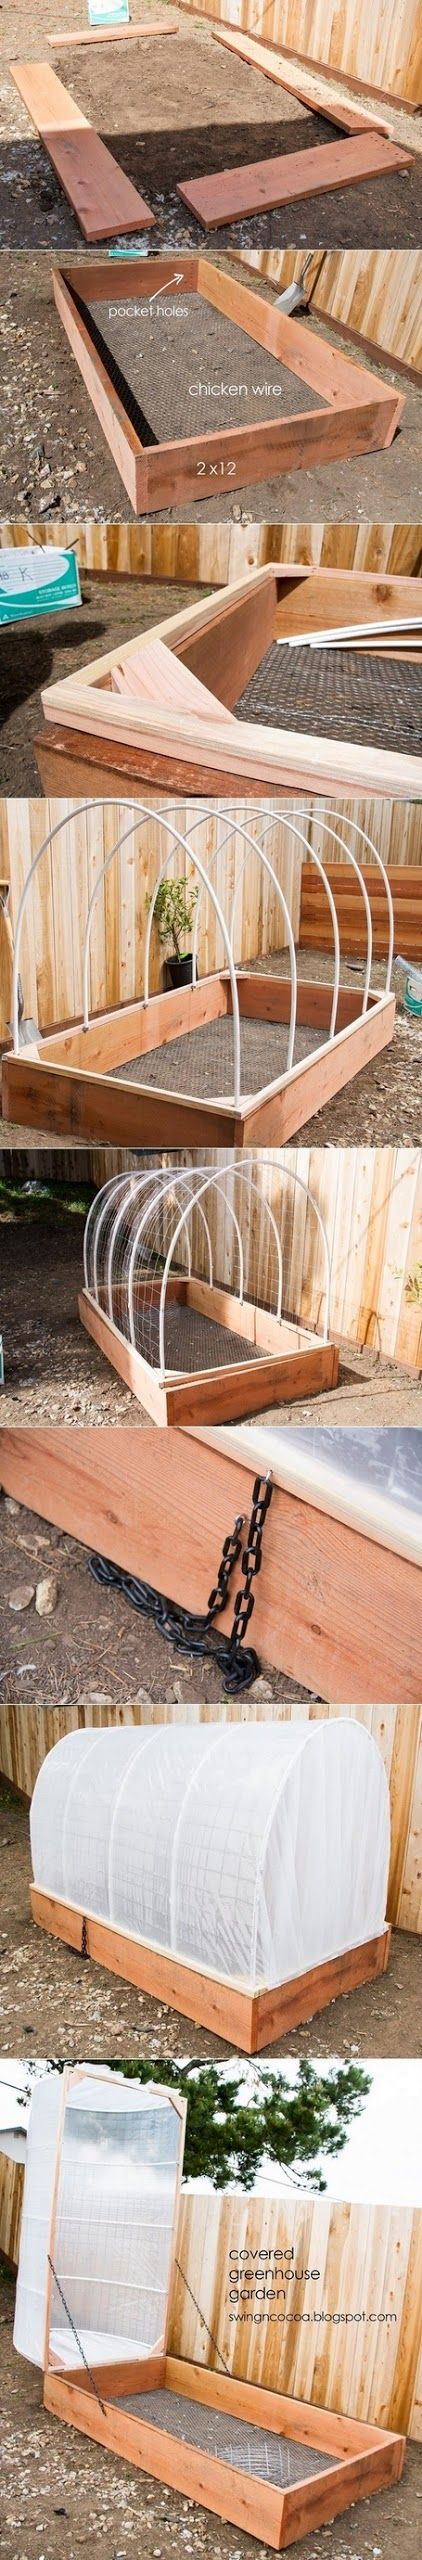 How To Building a Small Greenhouse